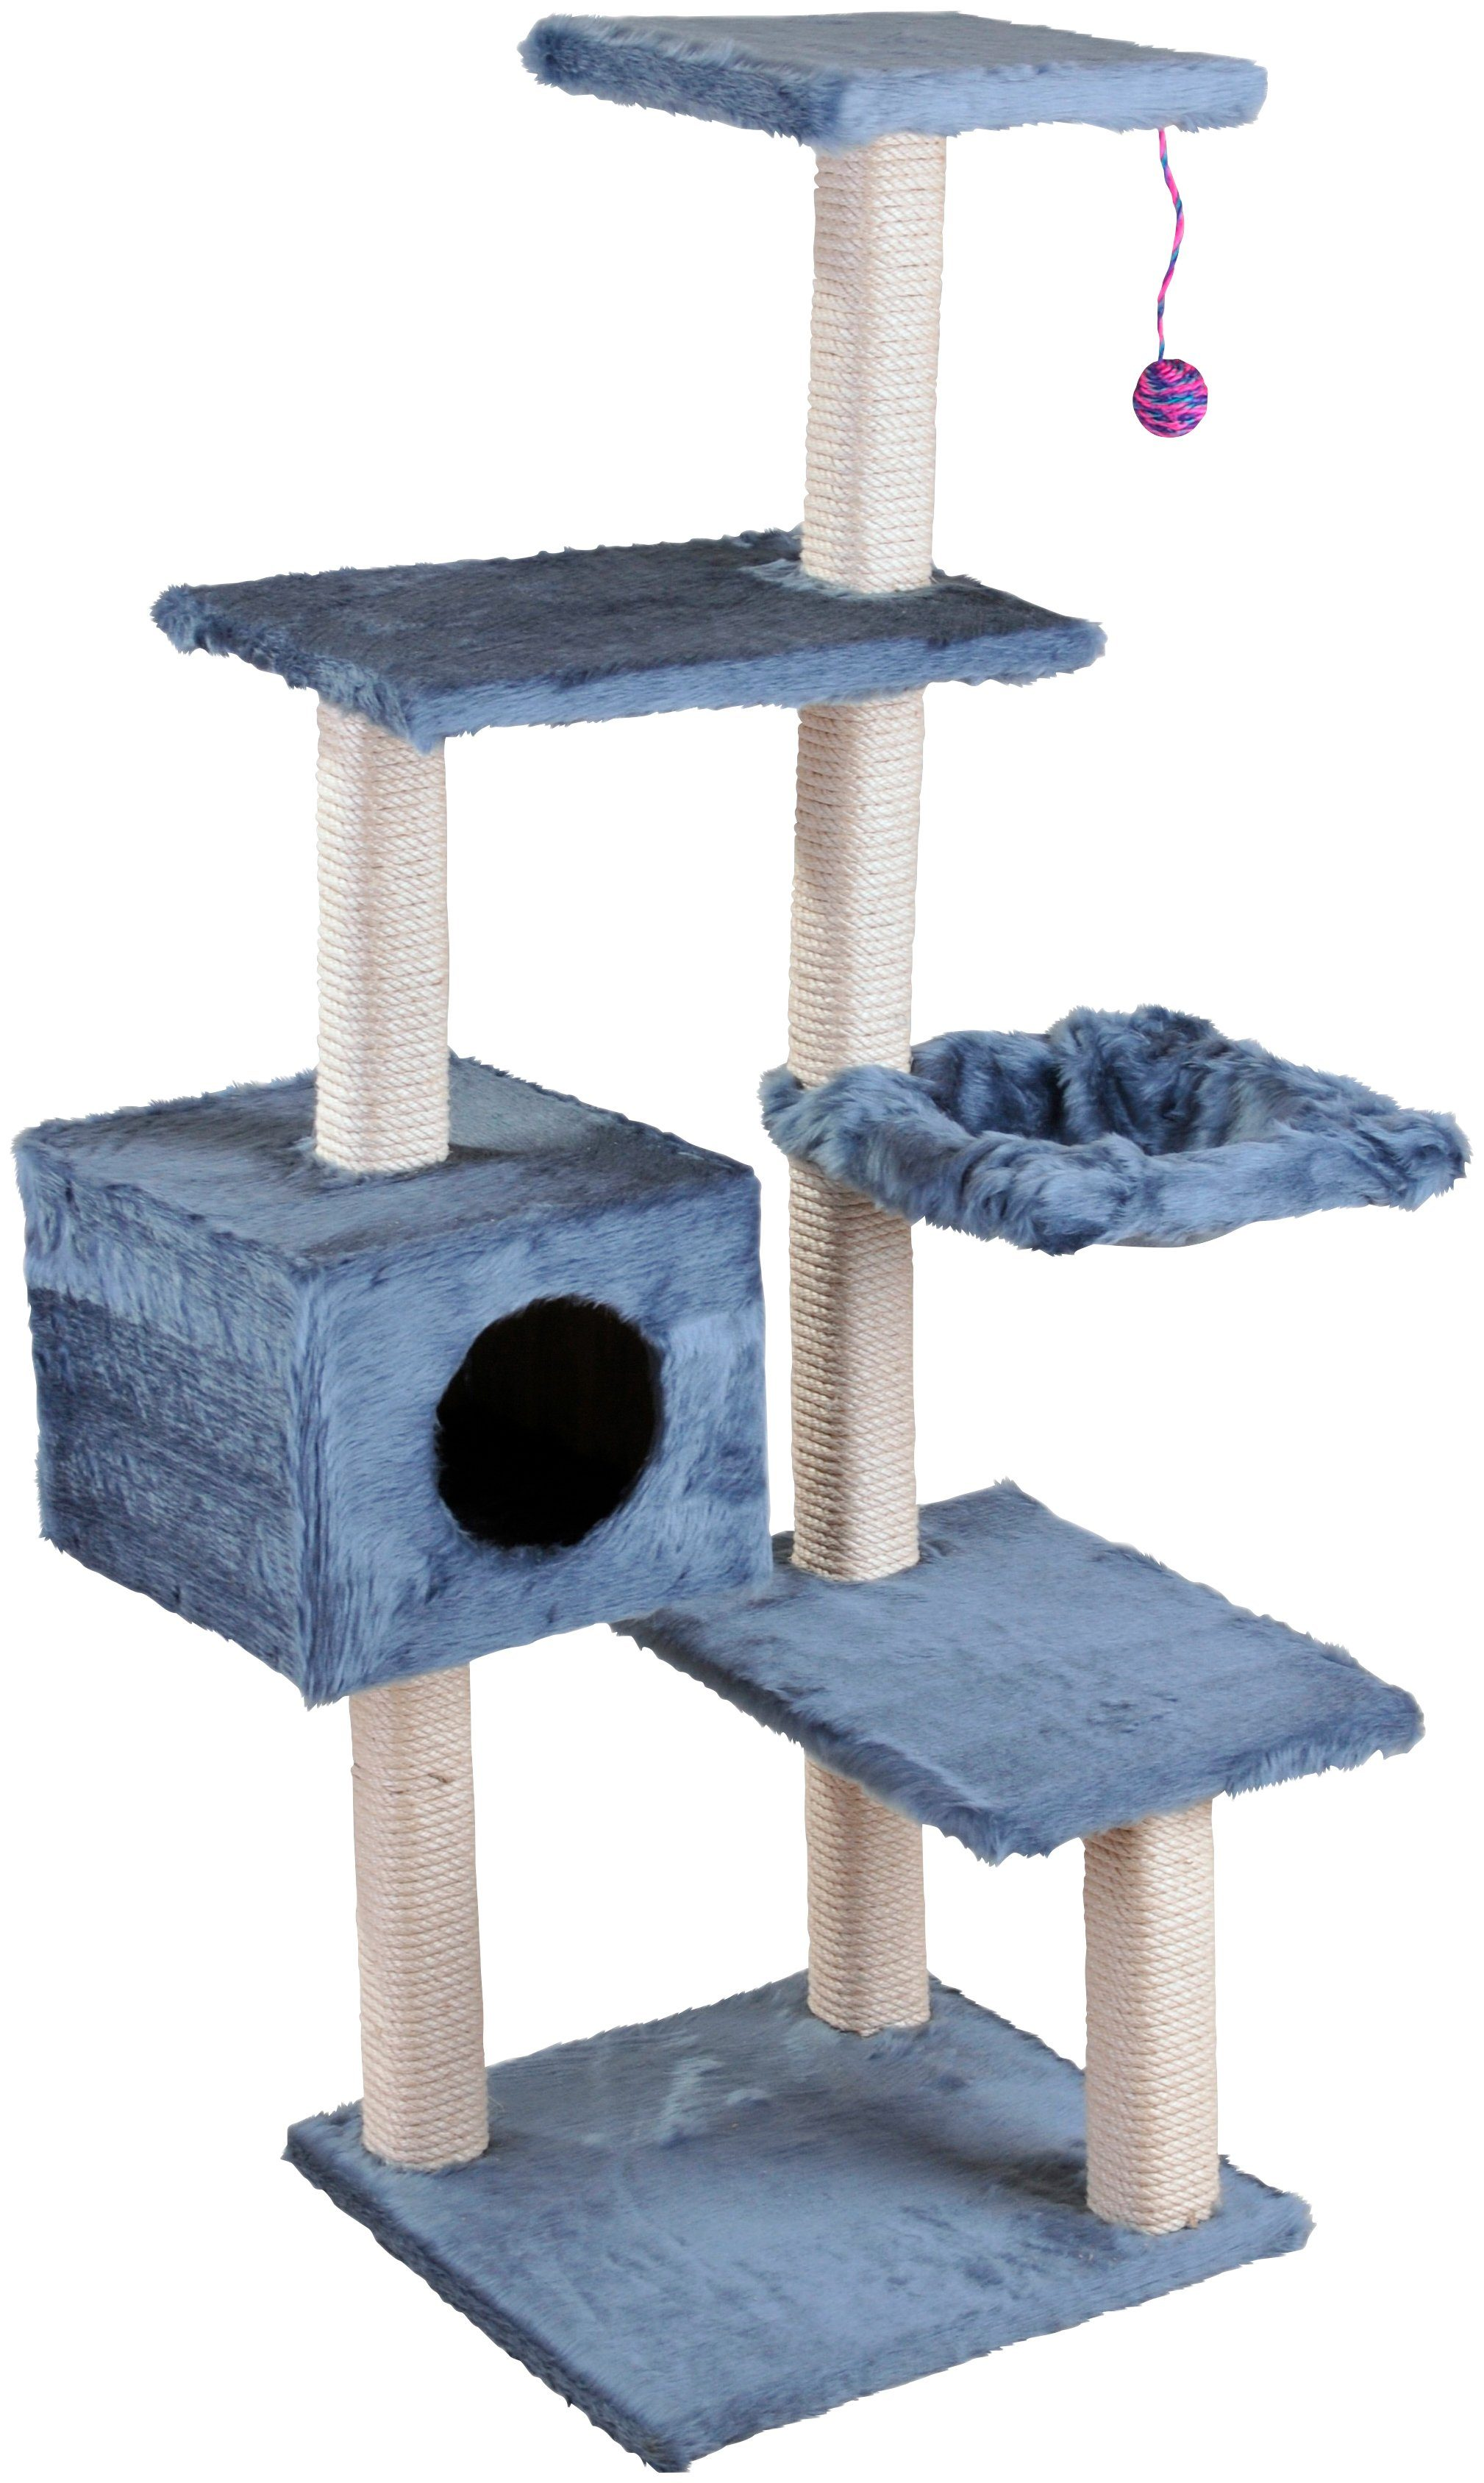 CAT DREAM Kratzbaum »Stufen-Kratzboy«, B/T/H: 70/45/130 cm, blau